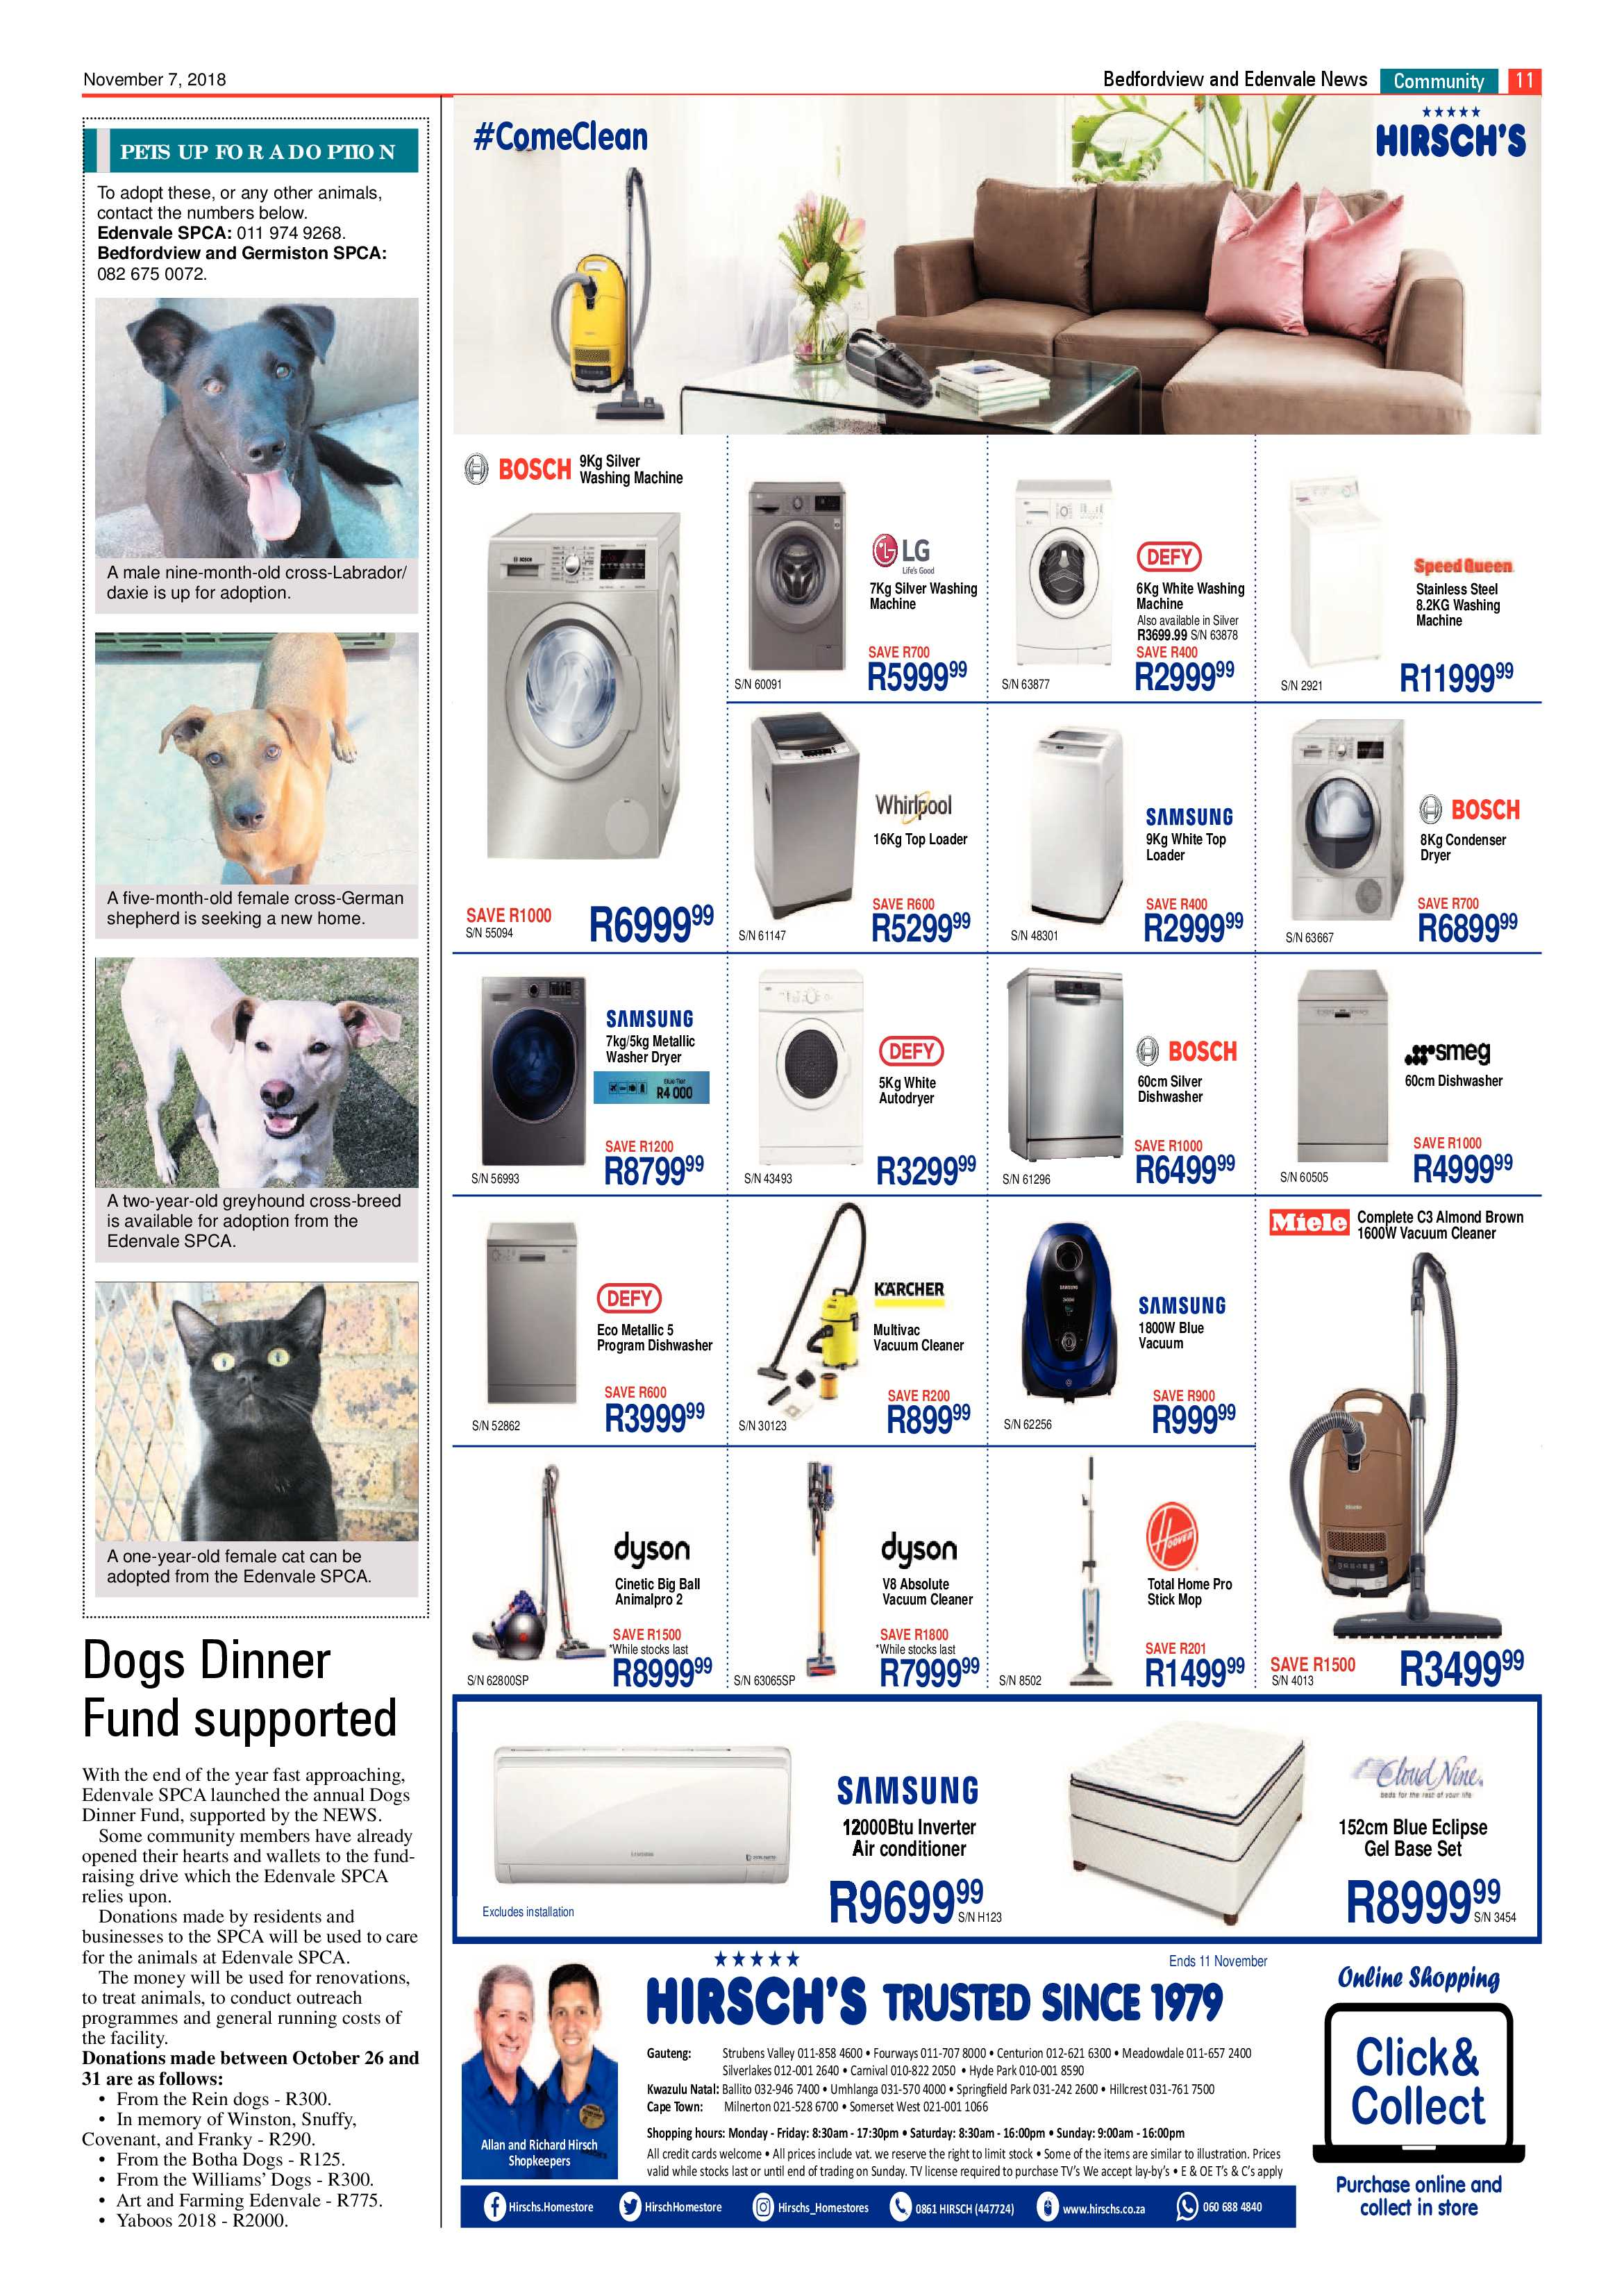 bedfordview-edenvale-news-07-november-2018-epapers-page-11